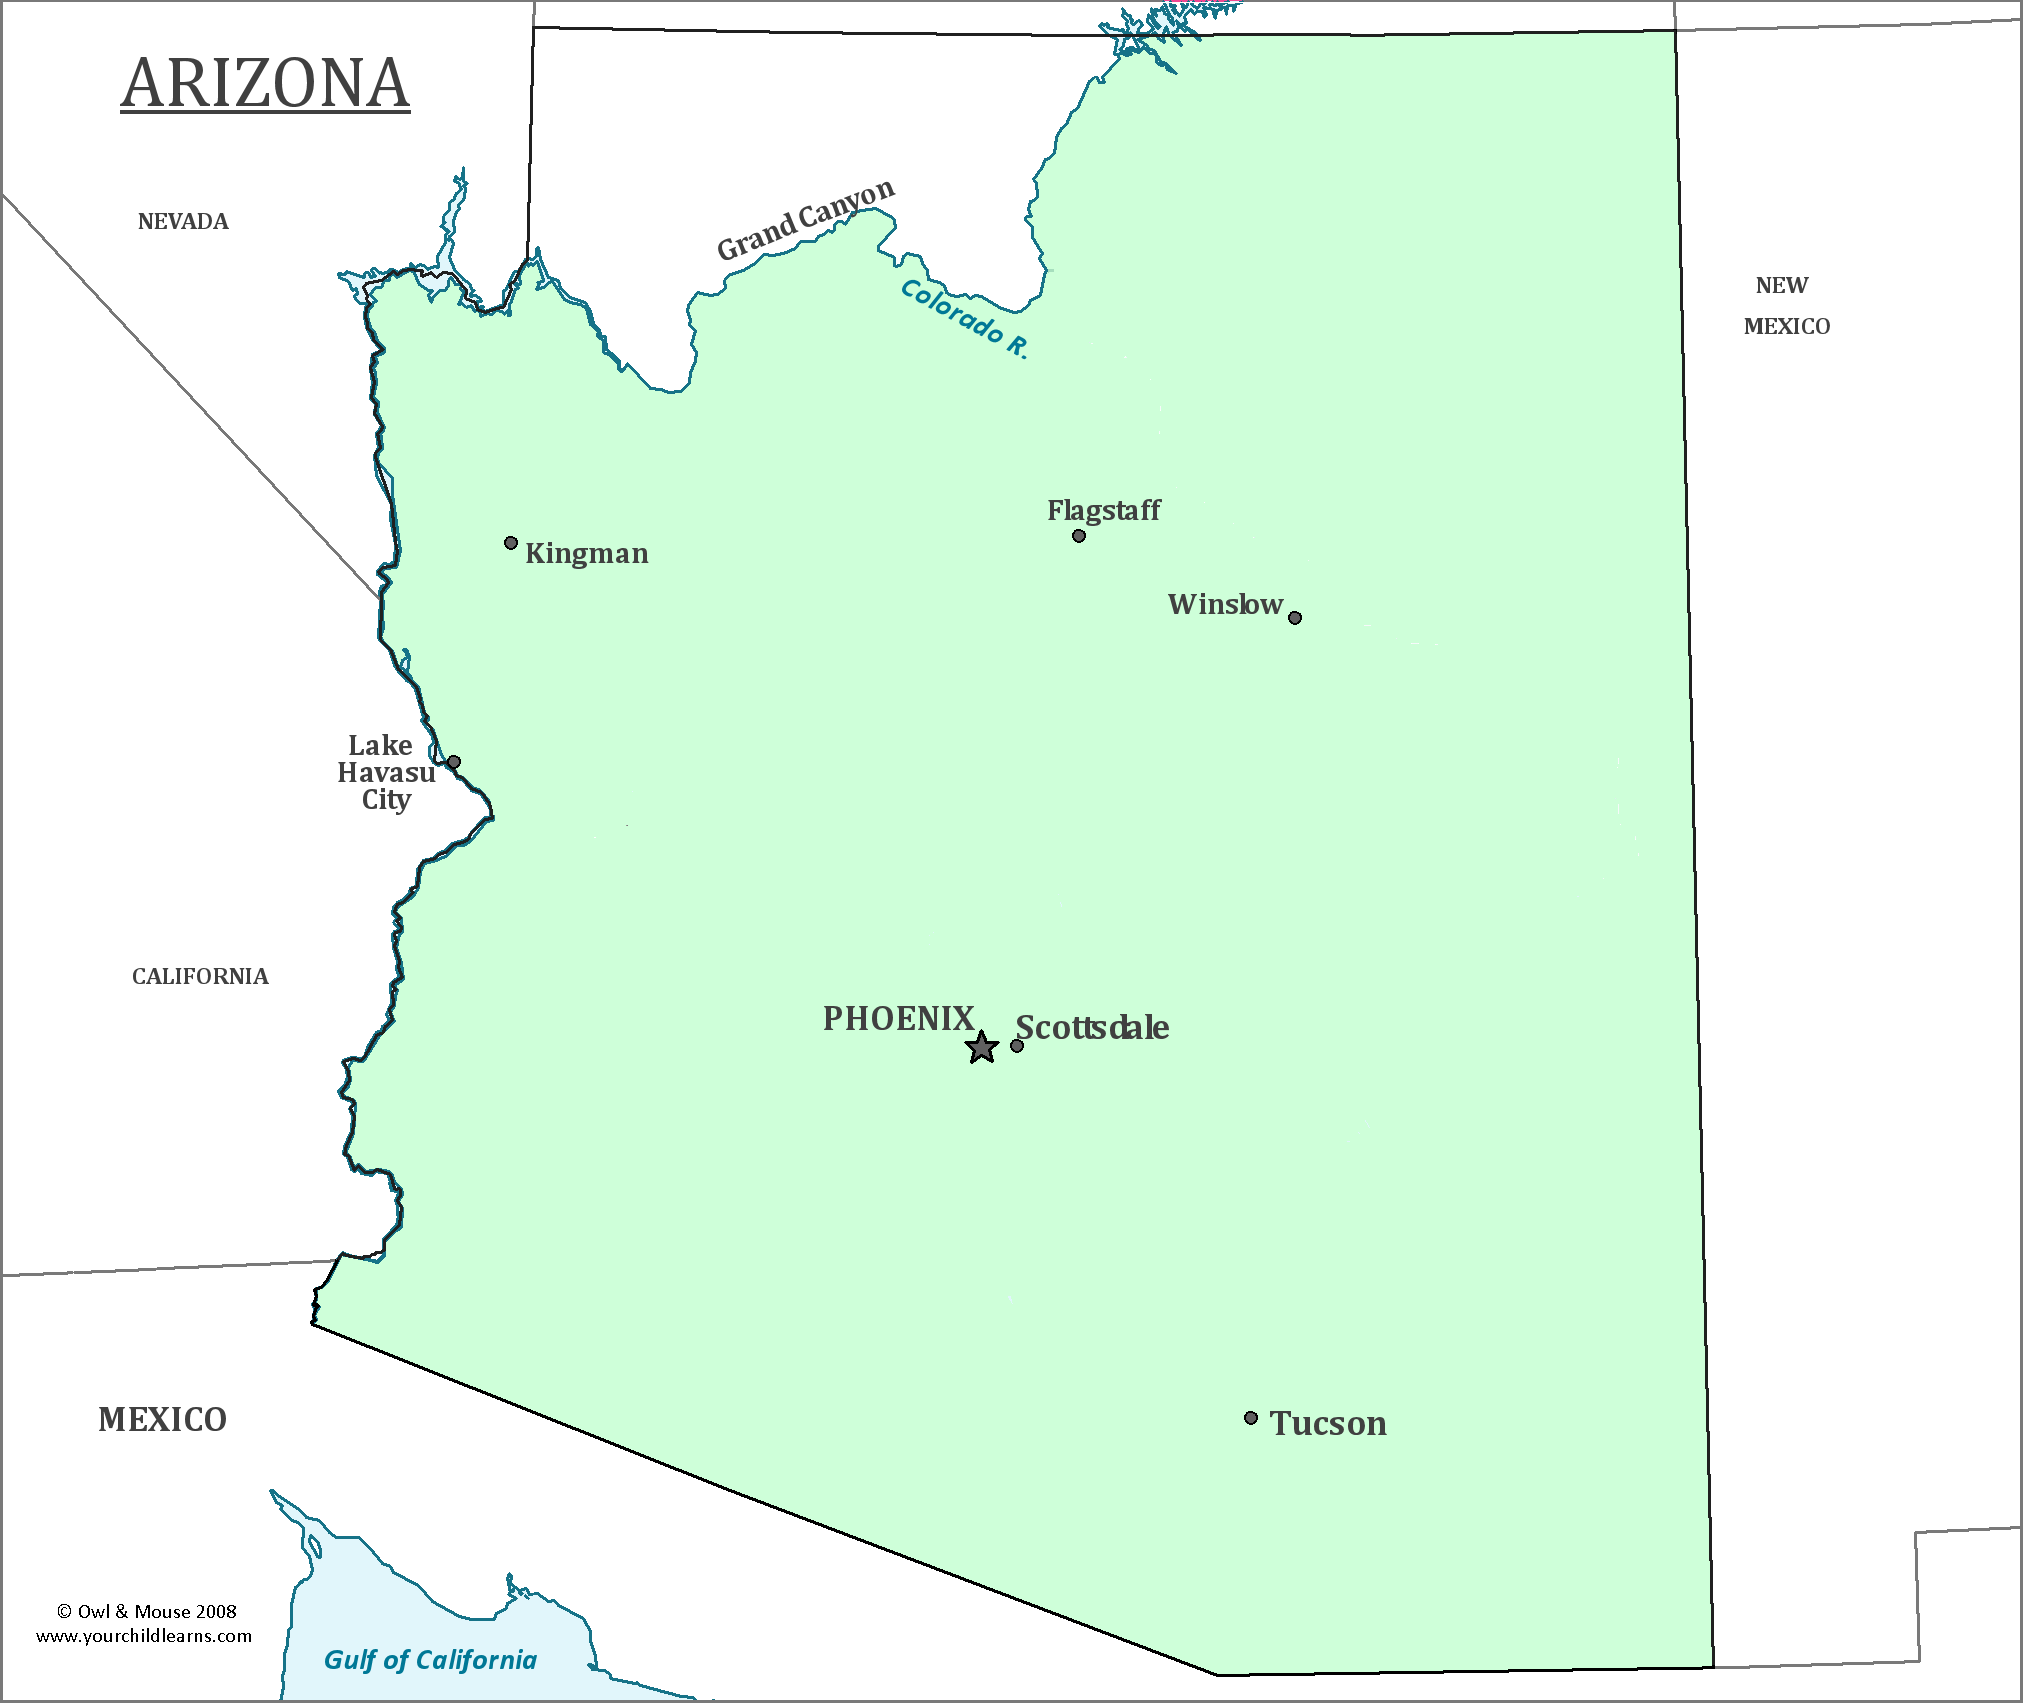 Arizona State Map   Map of Arizona and Information About the State